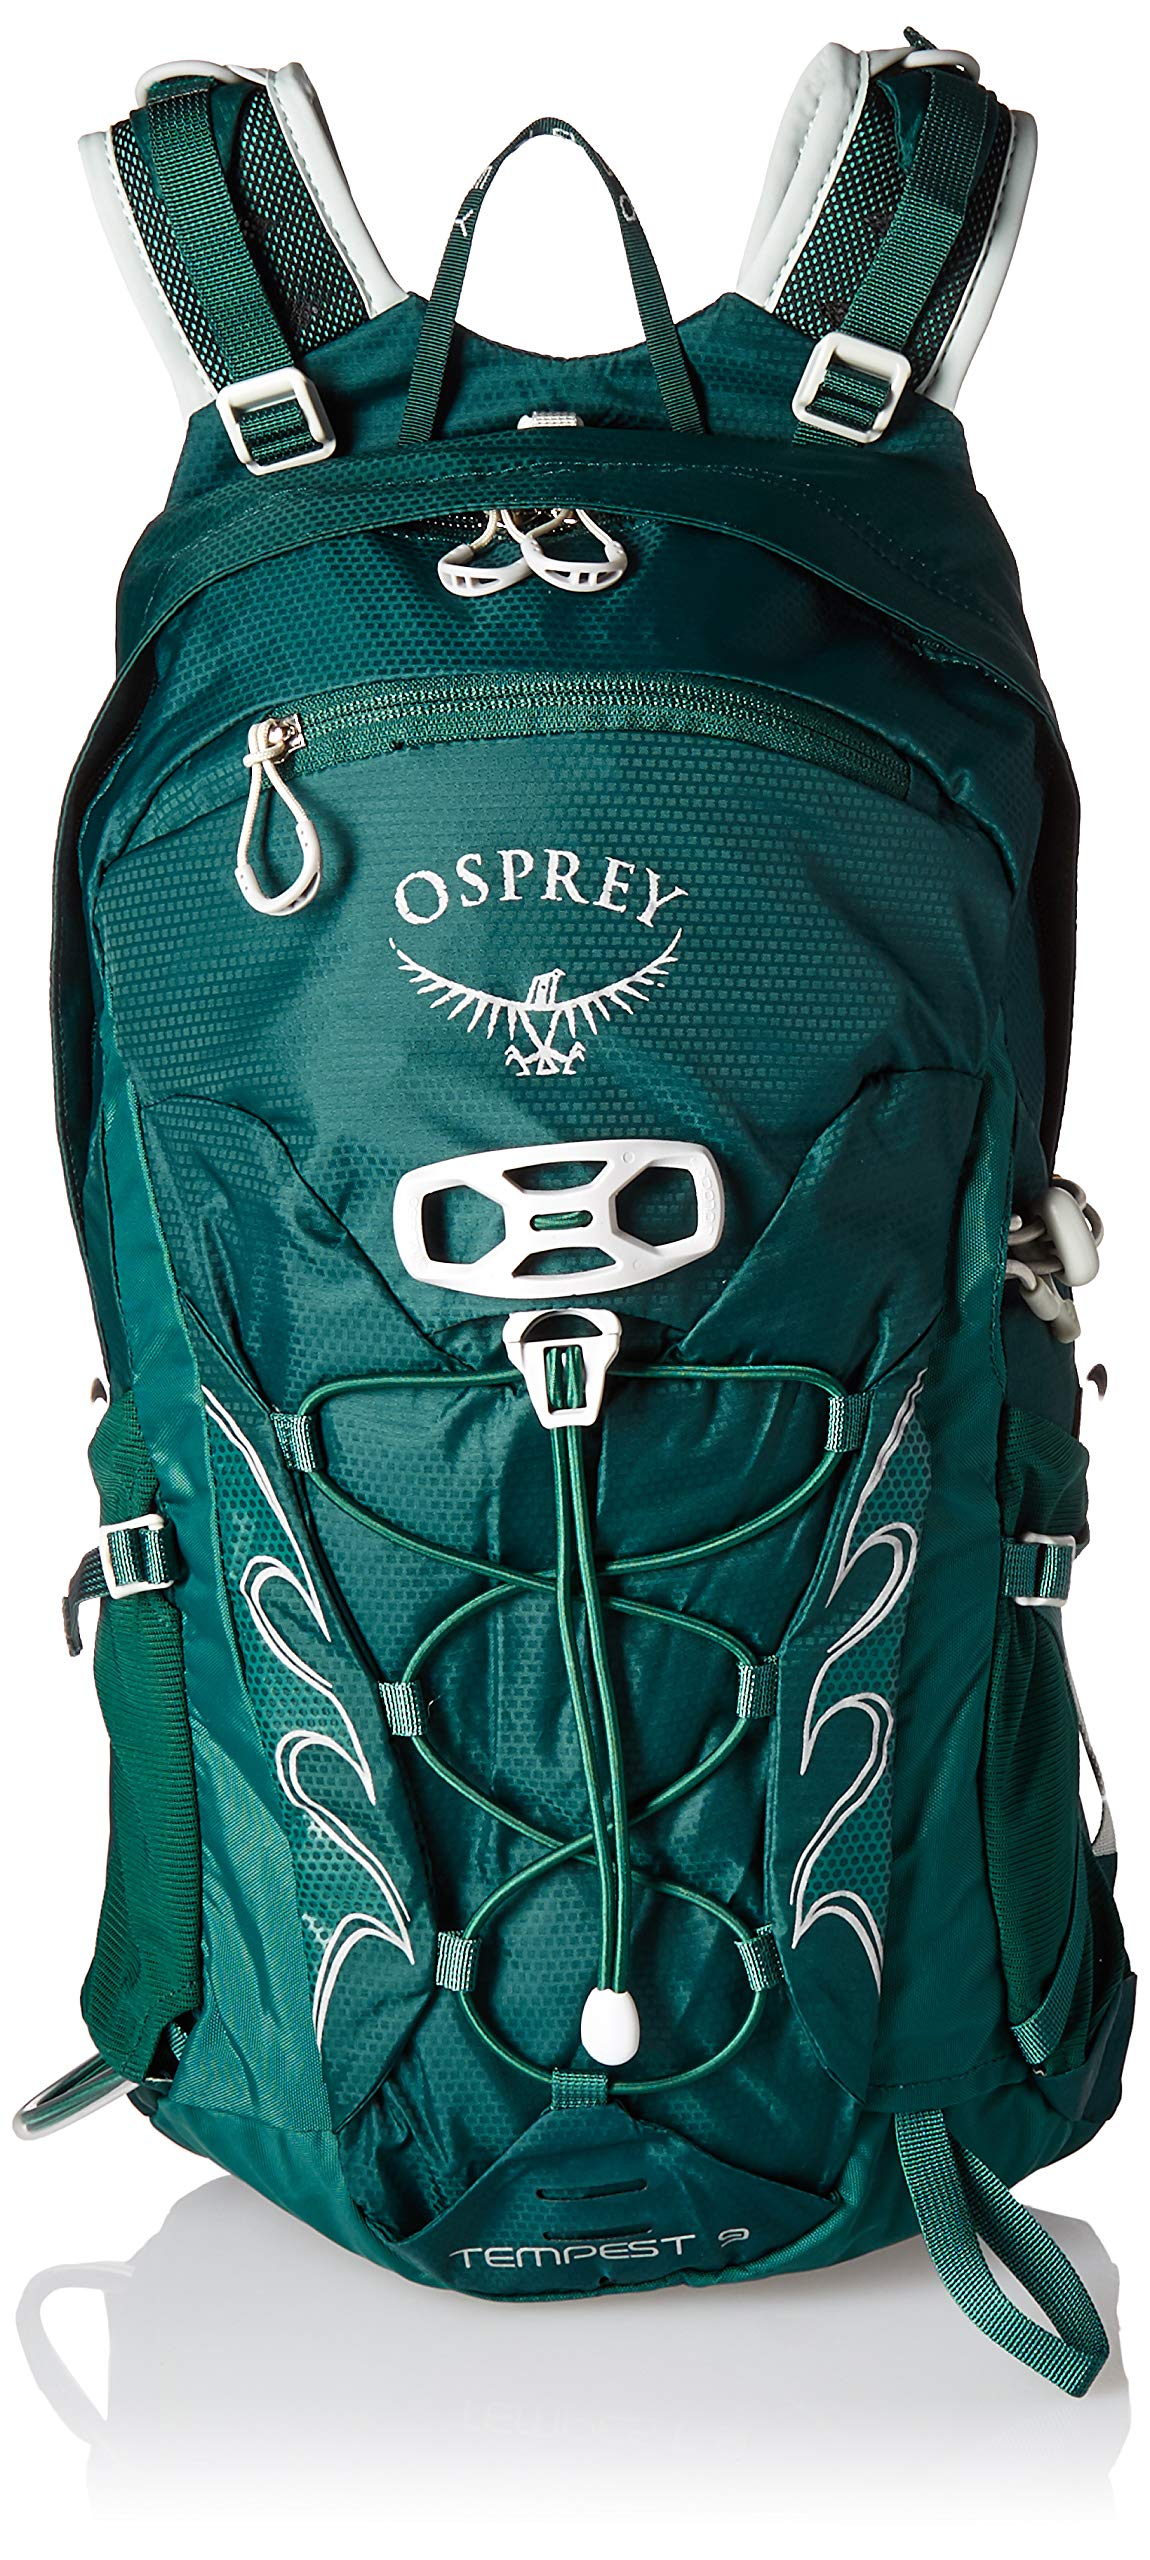 Osprey Packs Tempest 9 Women's Hiking Backpack, Chloroblast Green, WX/Small